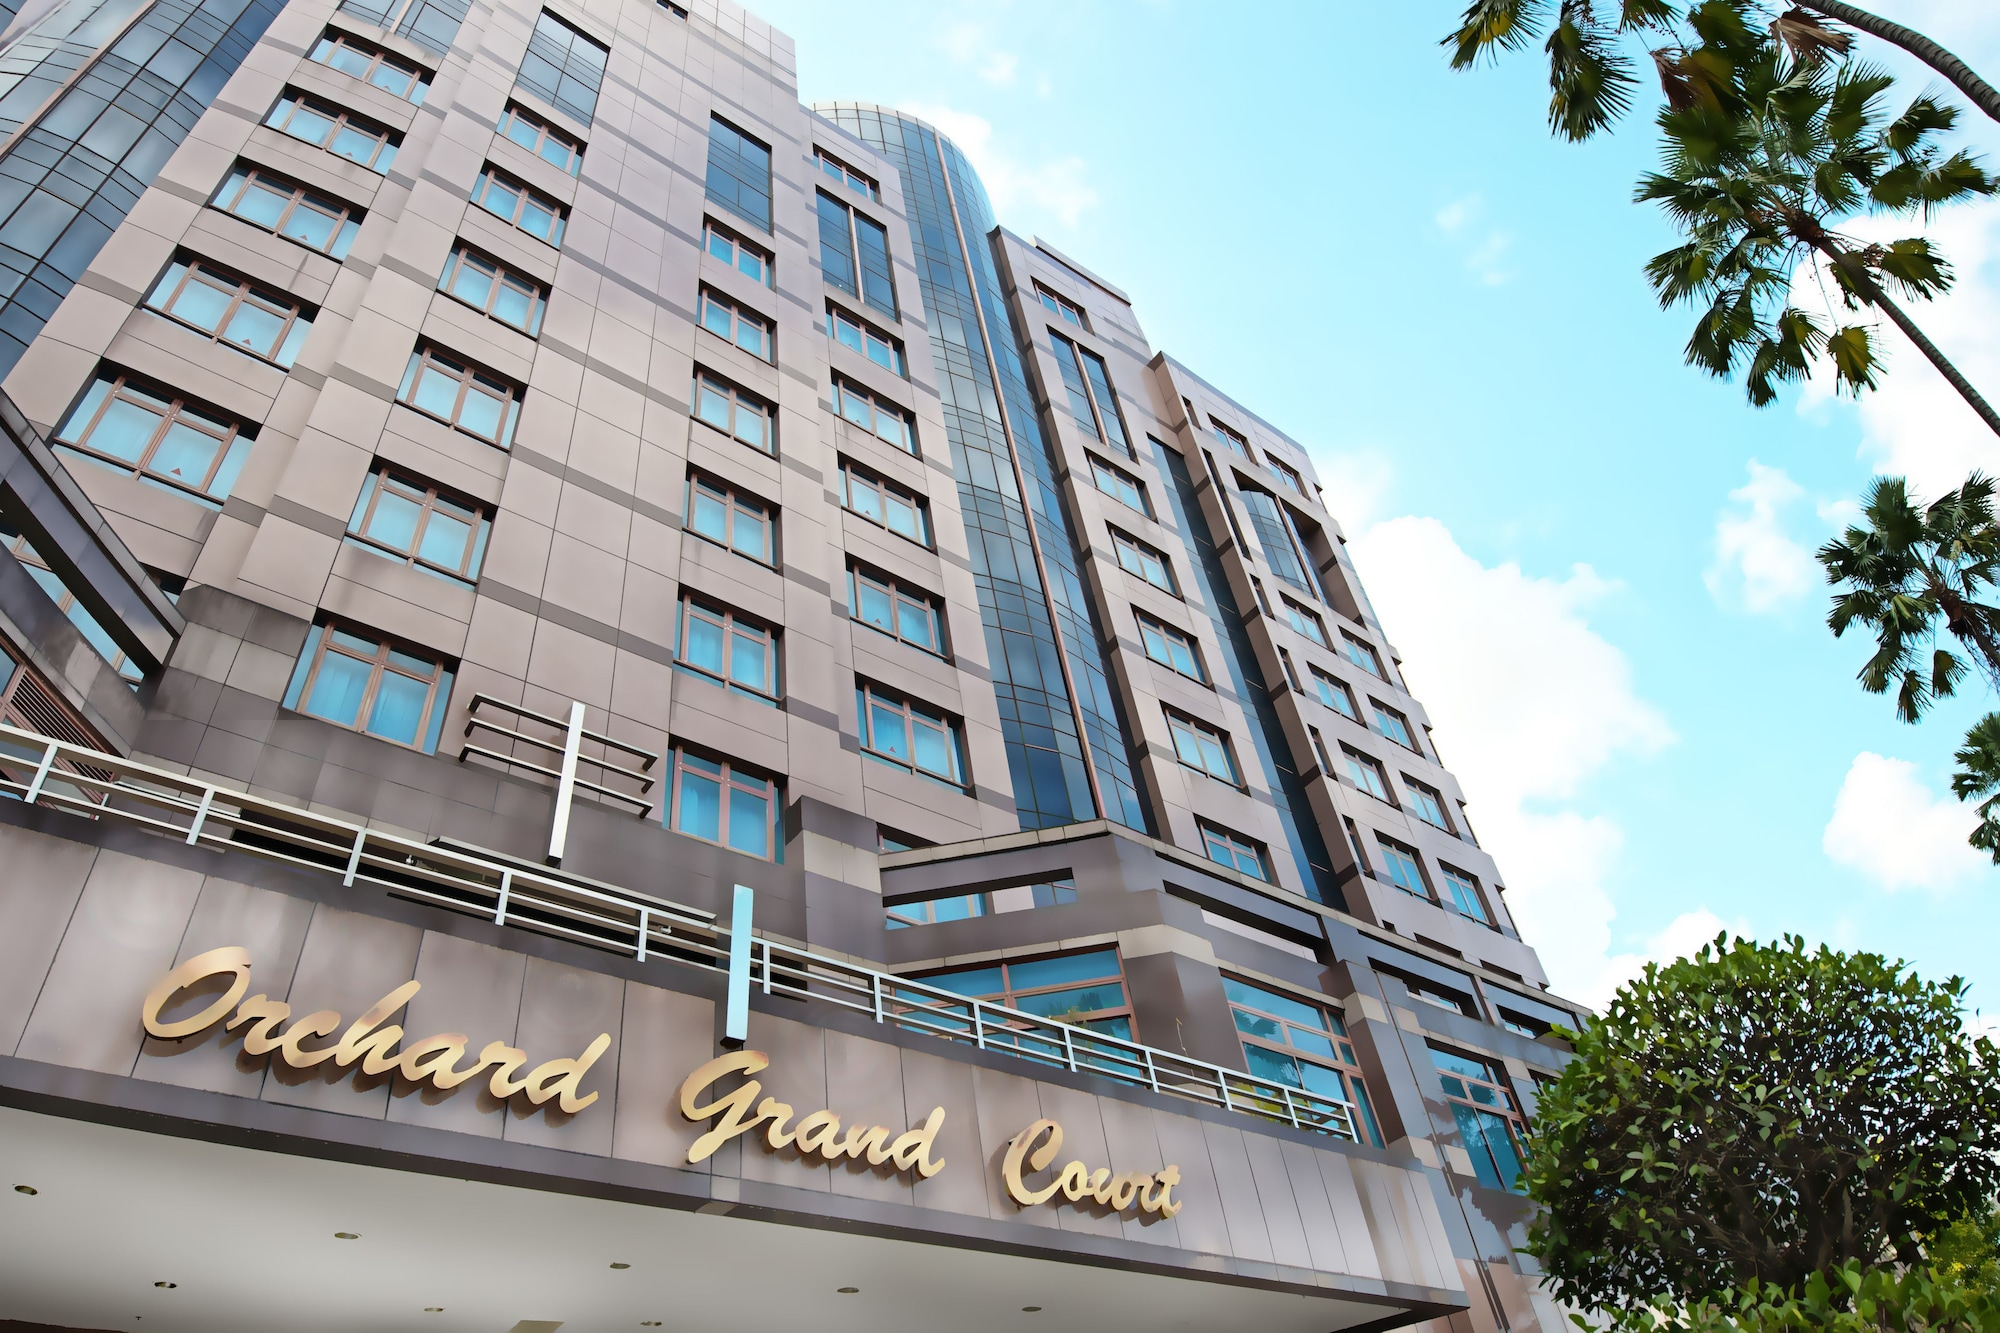 Orchard Grand Court, River Valley